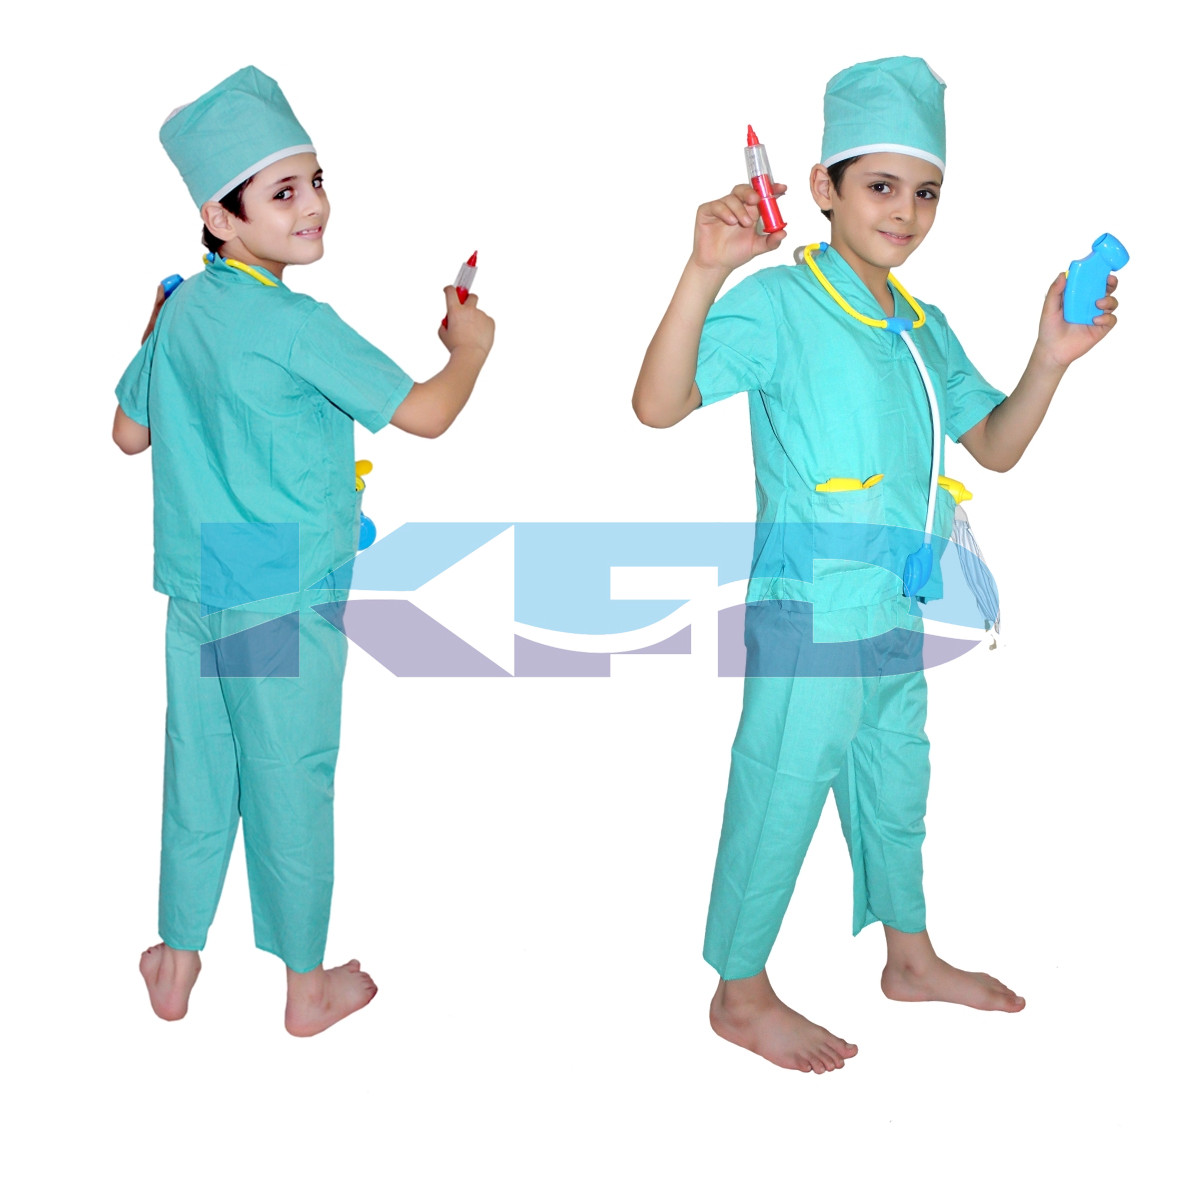 Surgeon/Doctor Costume,Our Helper Costume for School Annual function/Theme Party/Competition/Stage Shows/Birthday Party Dress